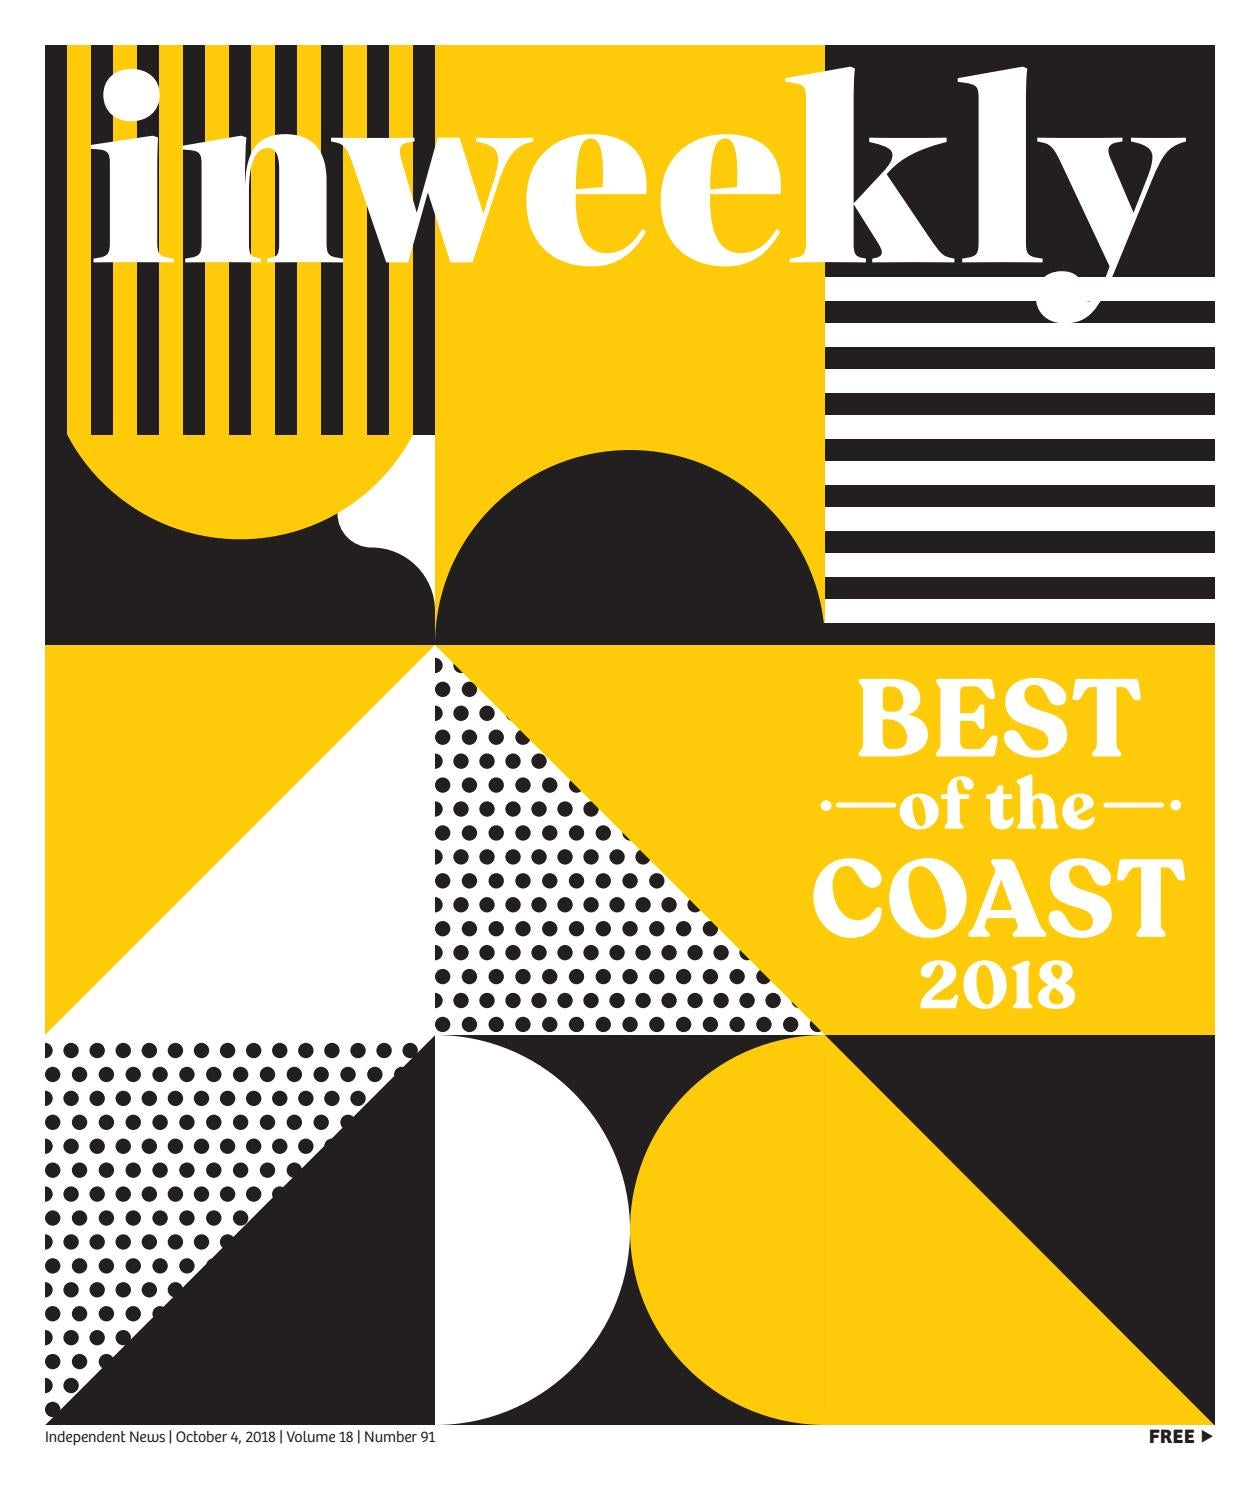 2b05325f91 Inweekly Oct. 4 2018 Issue—Best of the Coast by Inweekly - issuu